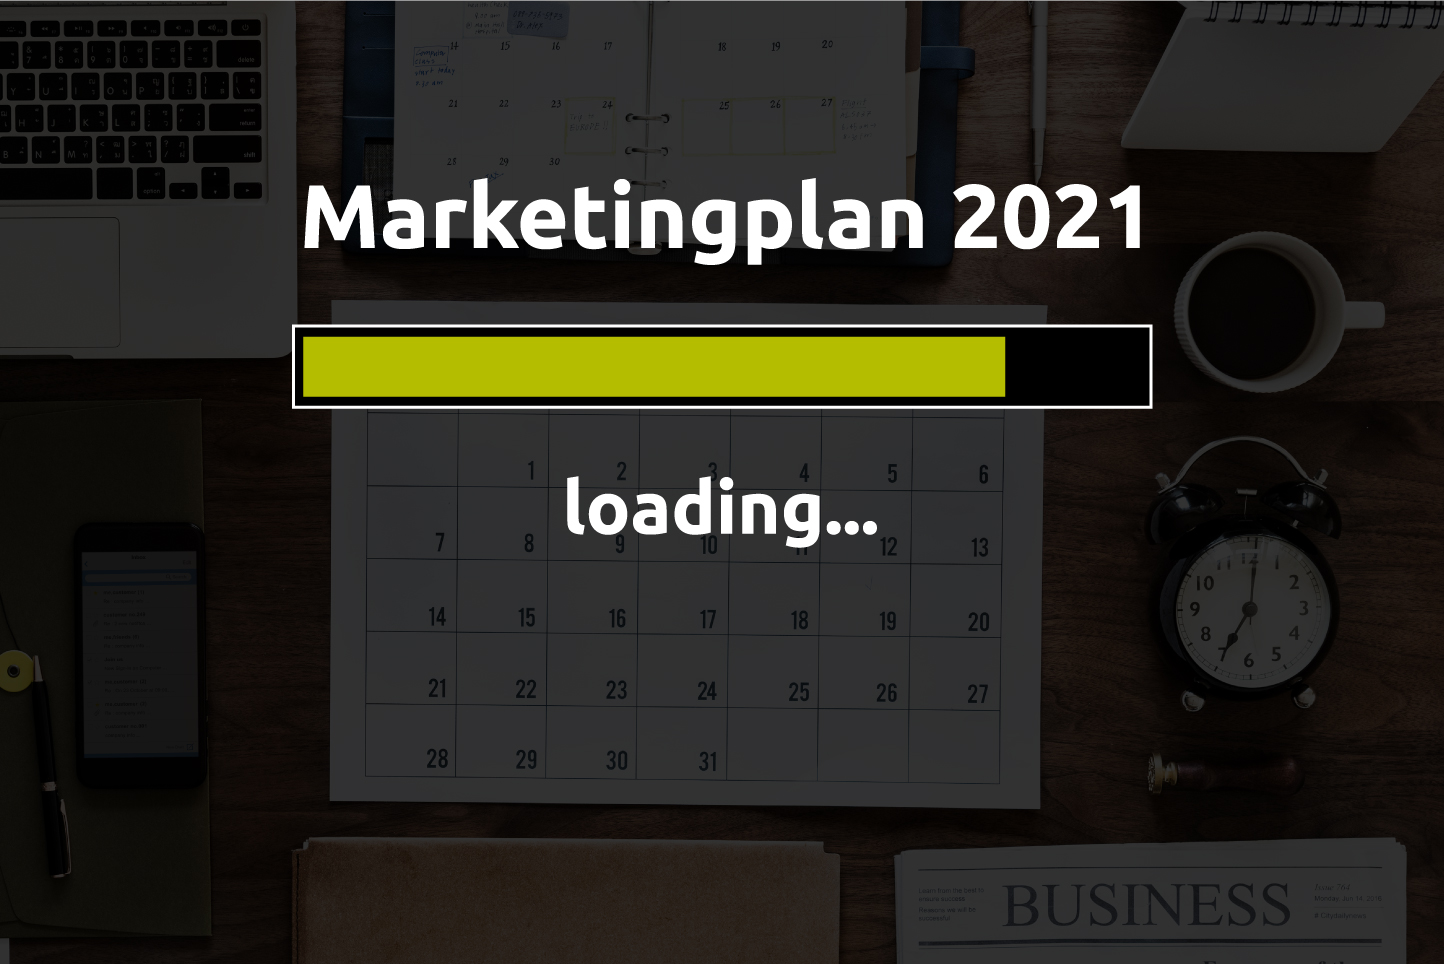 marketingplanning 2021